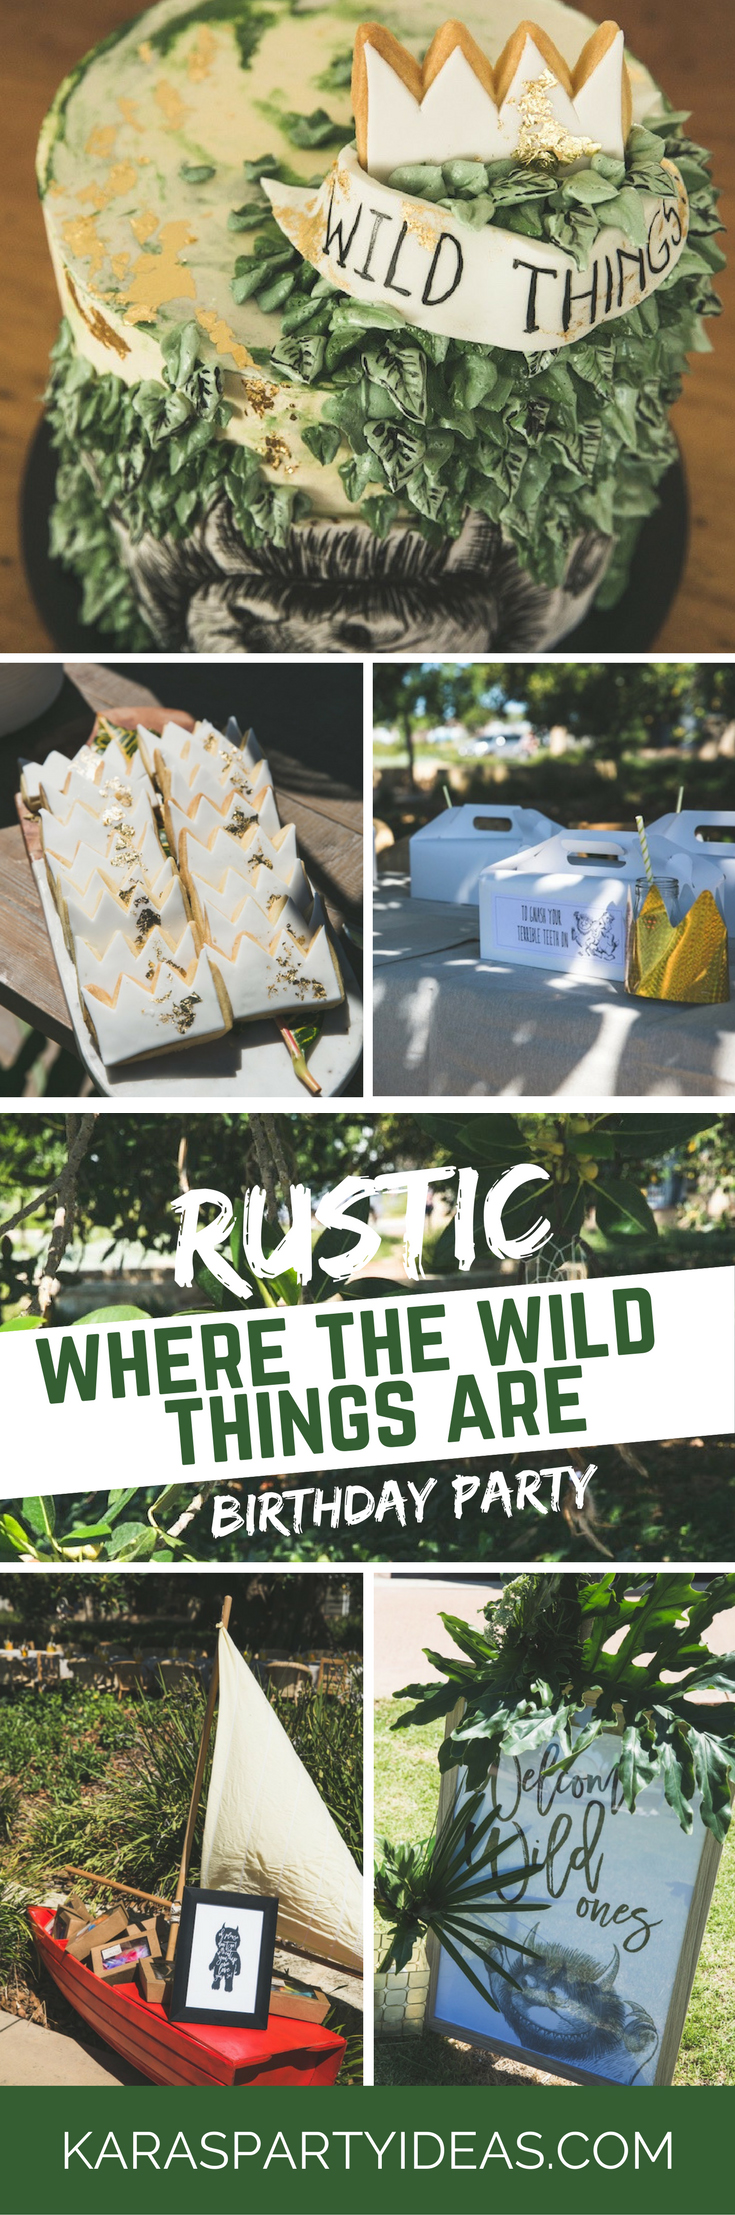 Rustic Where the Wild Things Are Birthday Party via Kara's Party Ideas - KarasPartyIdeas.com